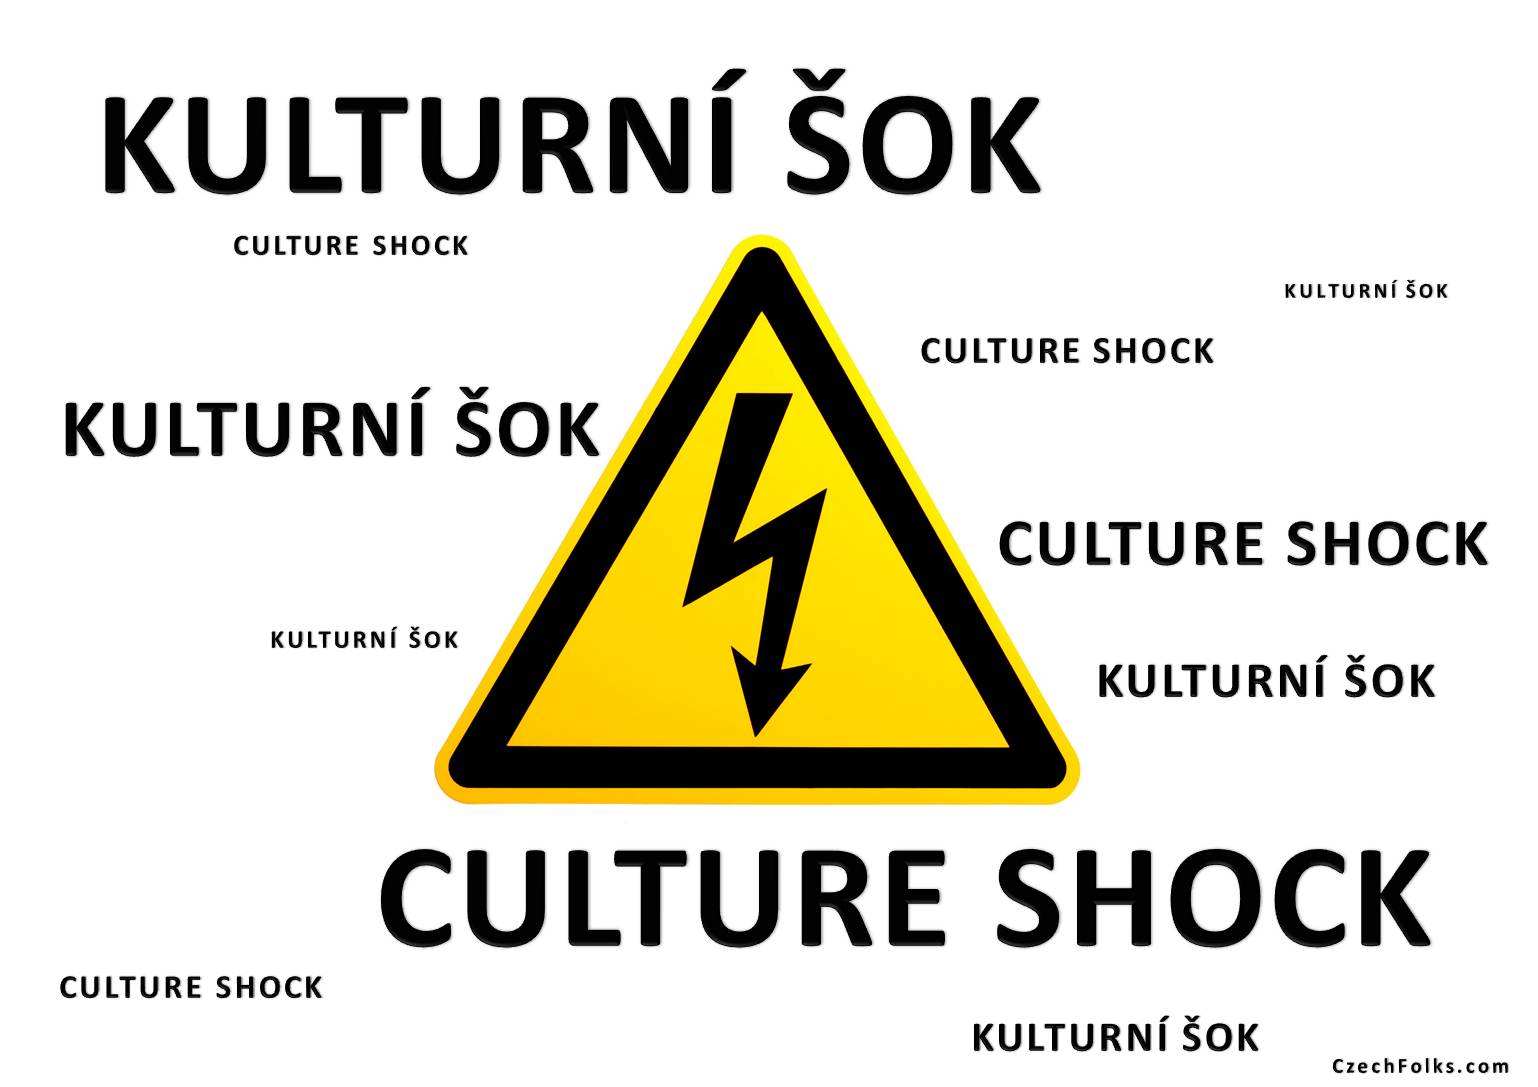 how to deal with culture shock in Korea